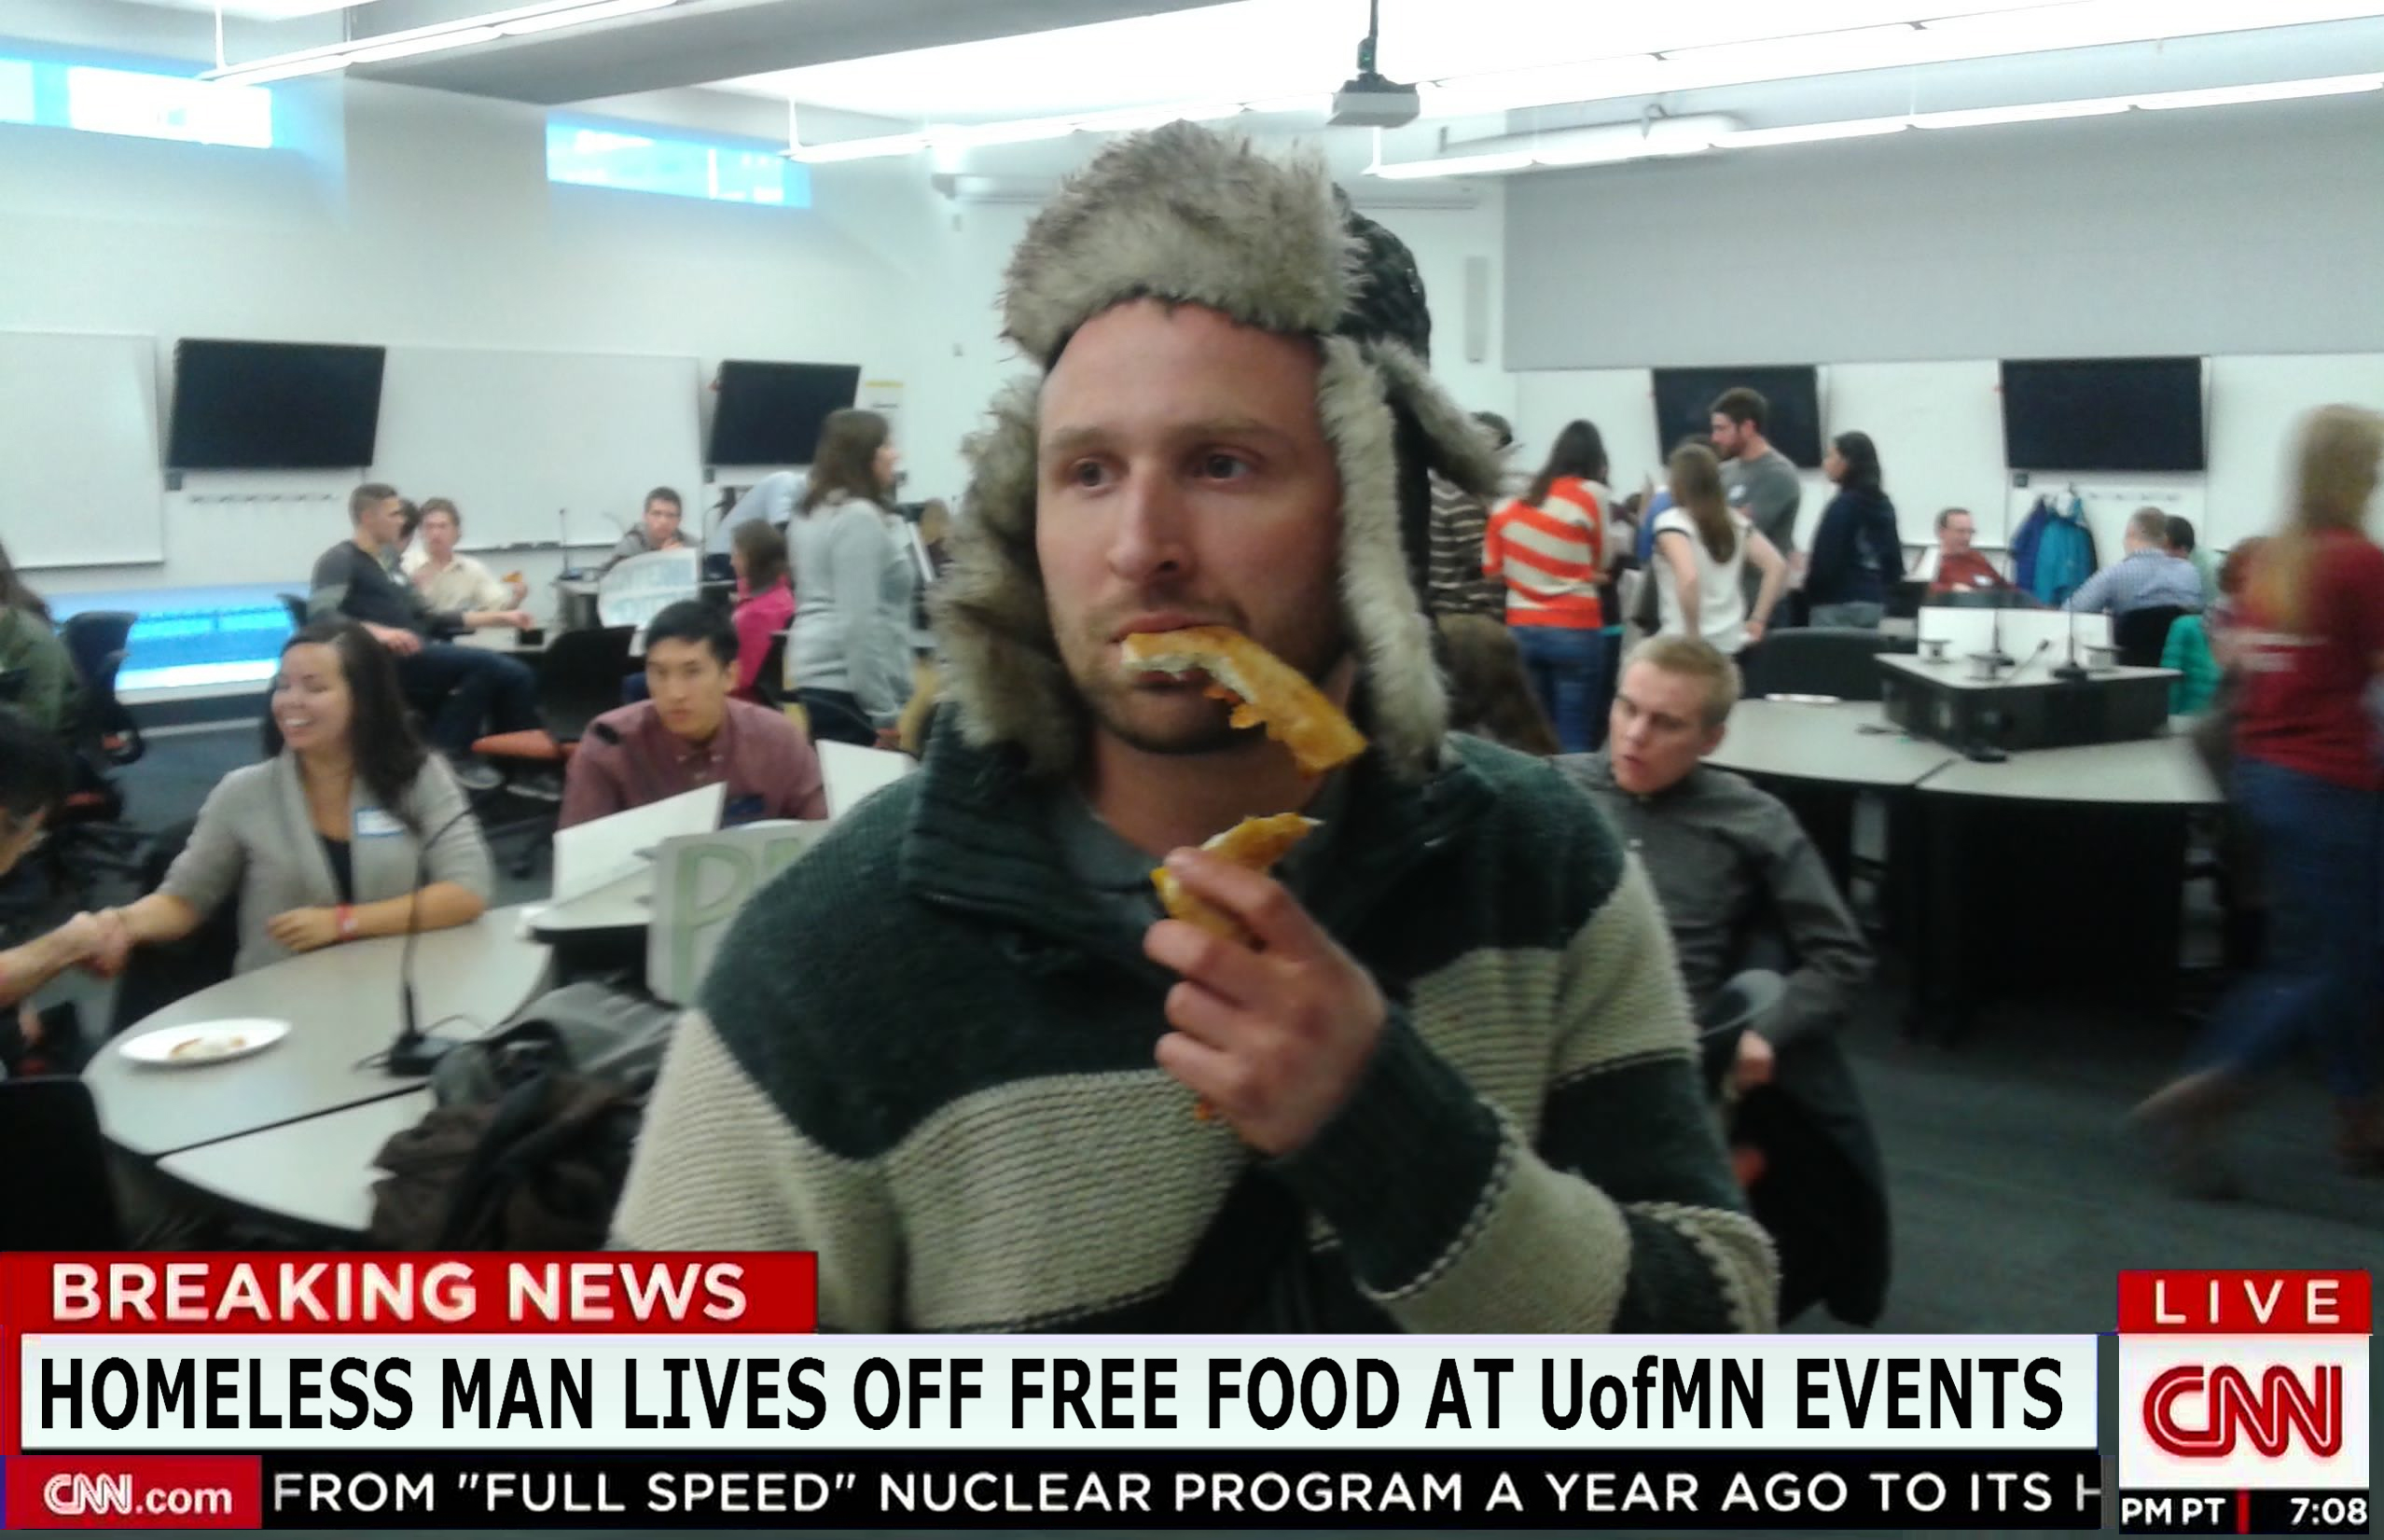 university of minnesota twin cities, coffman memorial union, CLA, Homeless Man Shares Diet of Free Food At UofMN Events, non-student, revealed his dietary secrets.economical and 'healthier then dumpsters,Pizza, Bagels, Chips, and Diet Coke, and Jimmy Johns, college life, eat for free, how to never pay for food, controversial, nonexistent screening process, don't ask for student ID, McCalister, MCTC's,free dining every dAY, best places in minnesota to eat free food, come grab 3 slices of pizza and leave, alternates between his only two coats, to avoid being recognized, alter egos with backstories.emergencies, feast of nations, umn events calendar, fun things to do, get arrested, cnn, breaking news, satire, STSS, pizza crust stock images, homeless man stock photo, crazy bum, no table manners